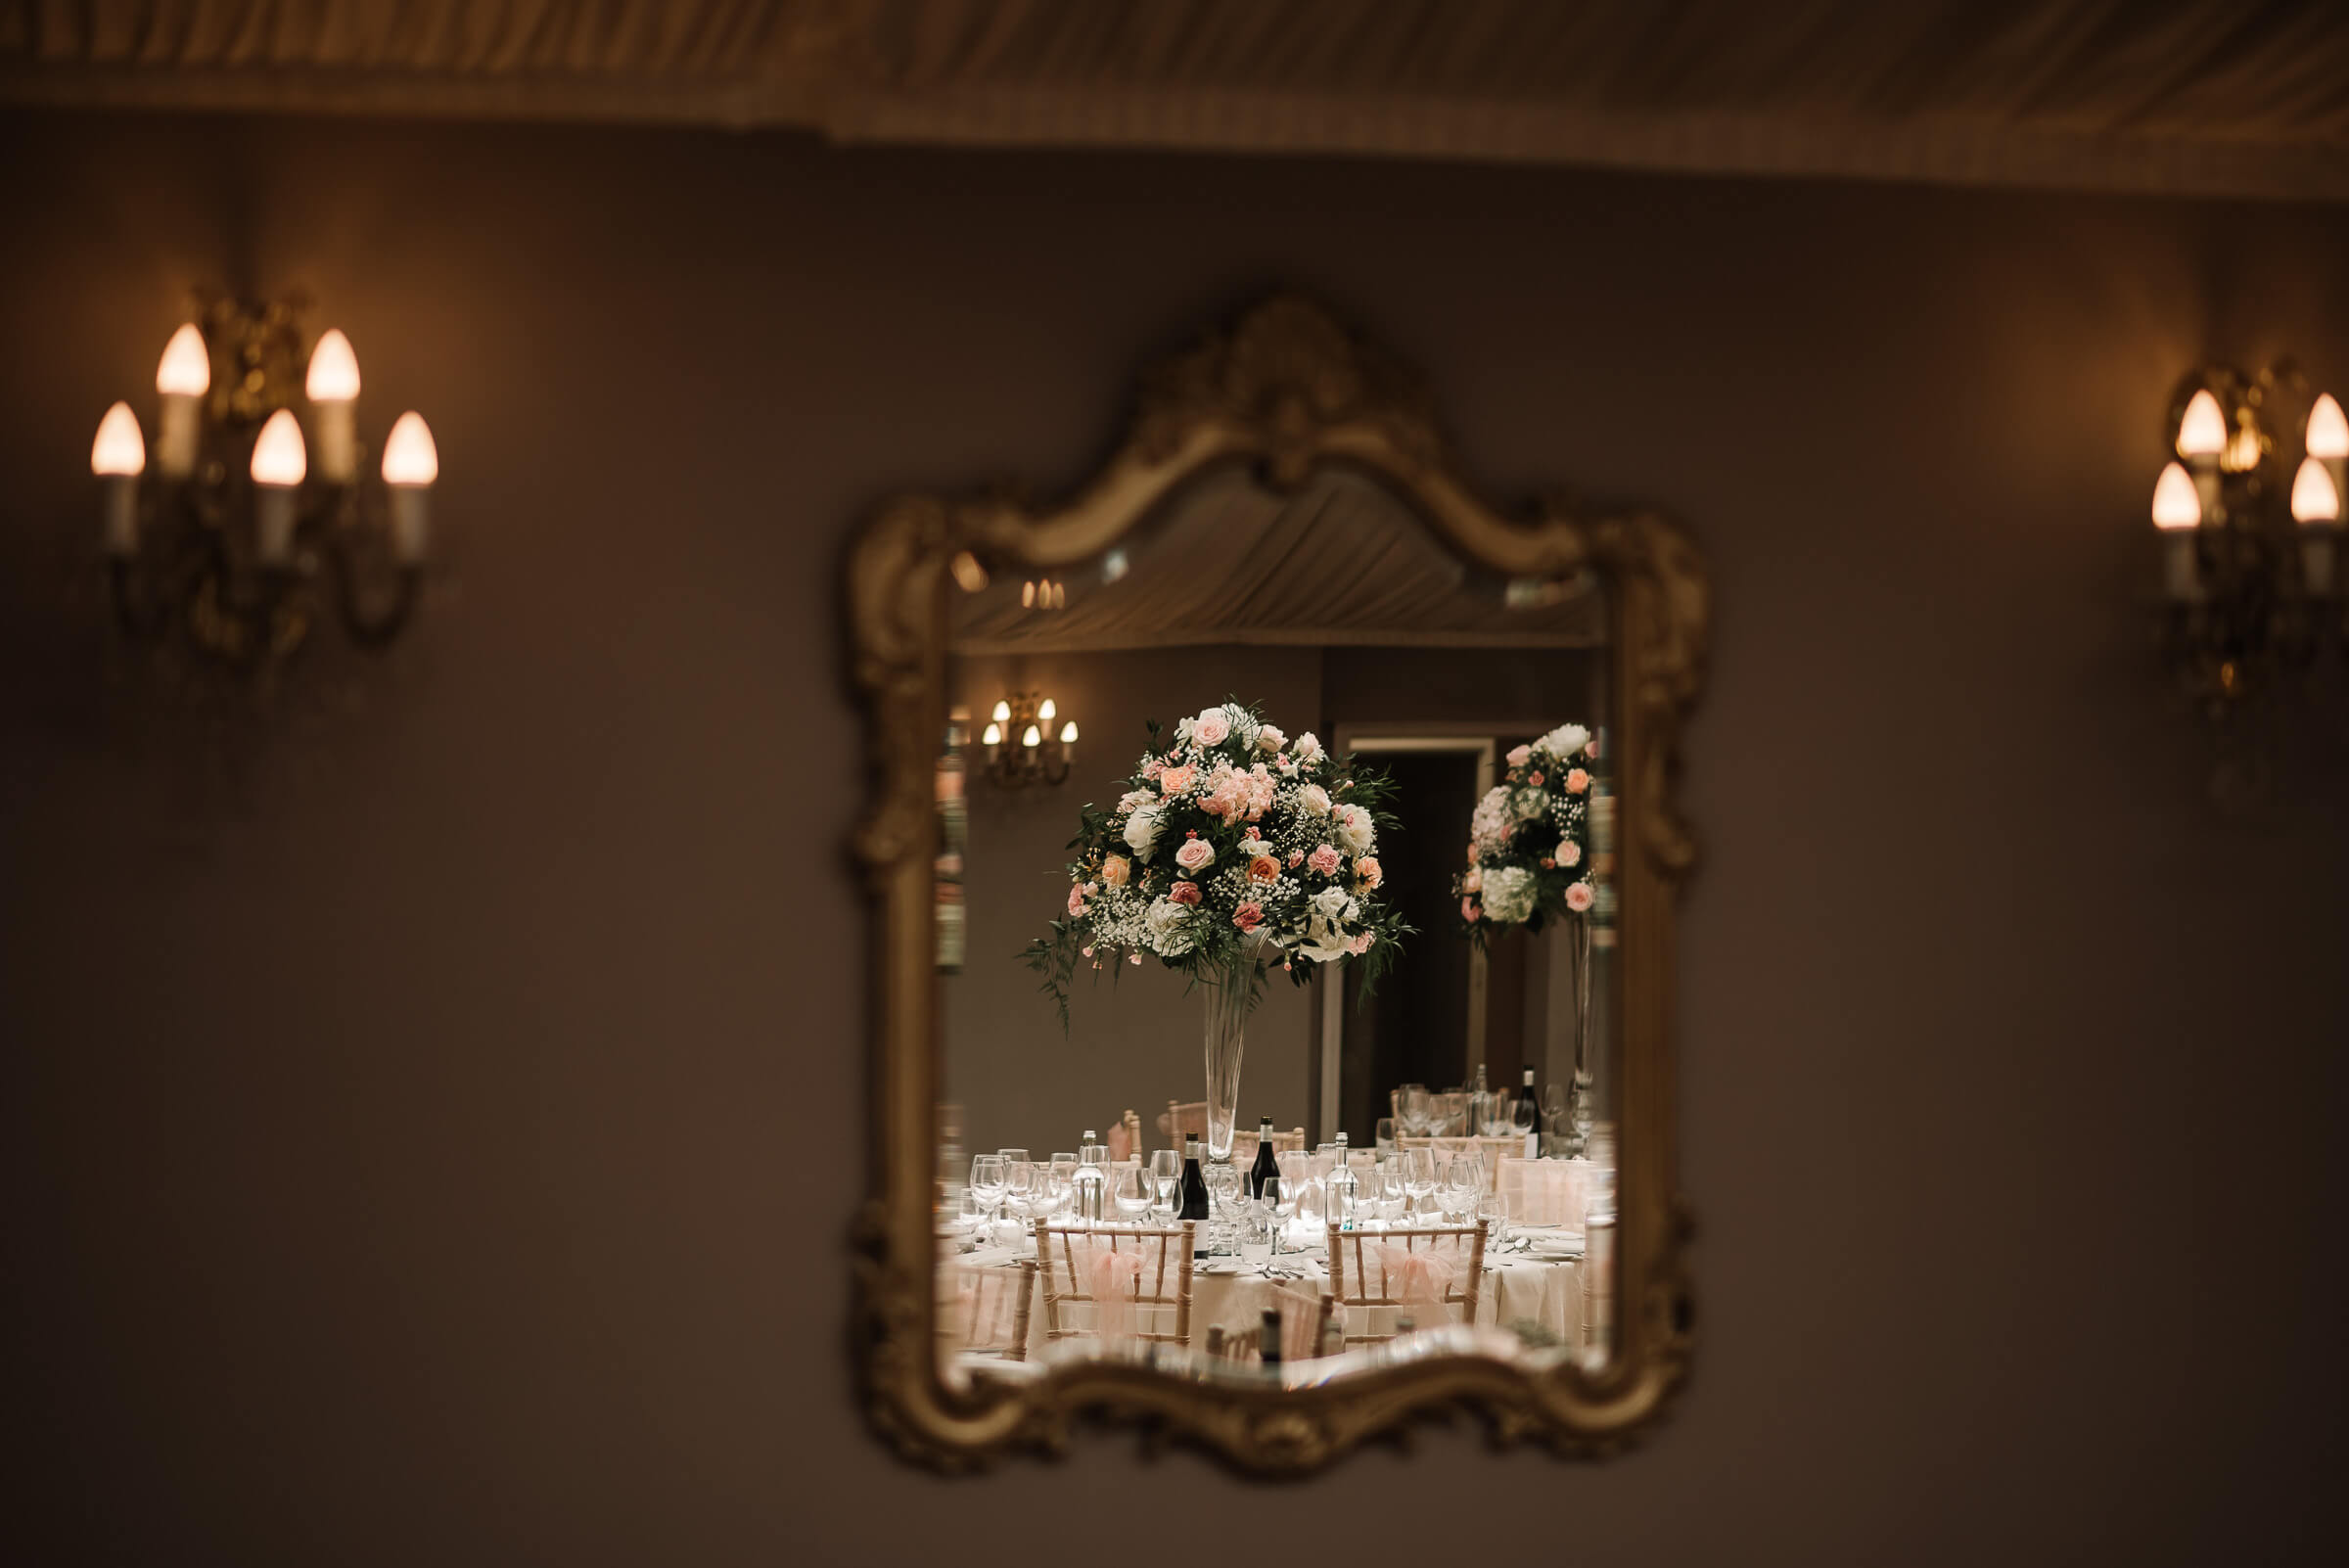 refection of table flowers in mirror